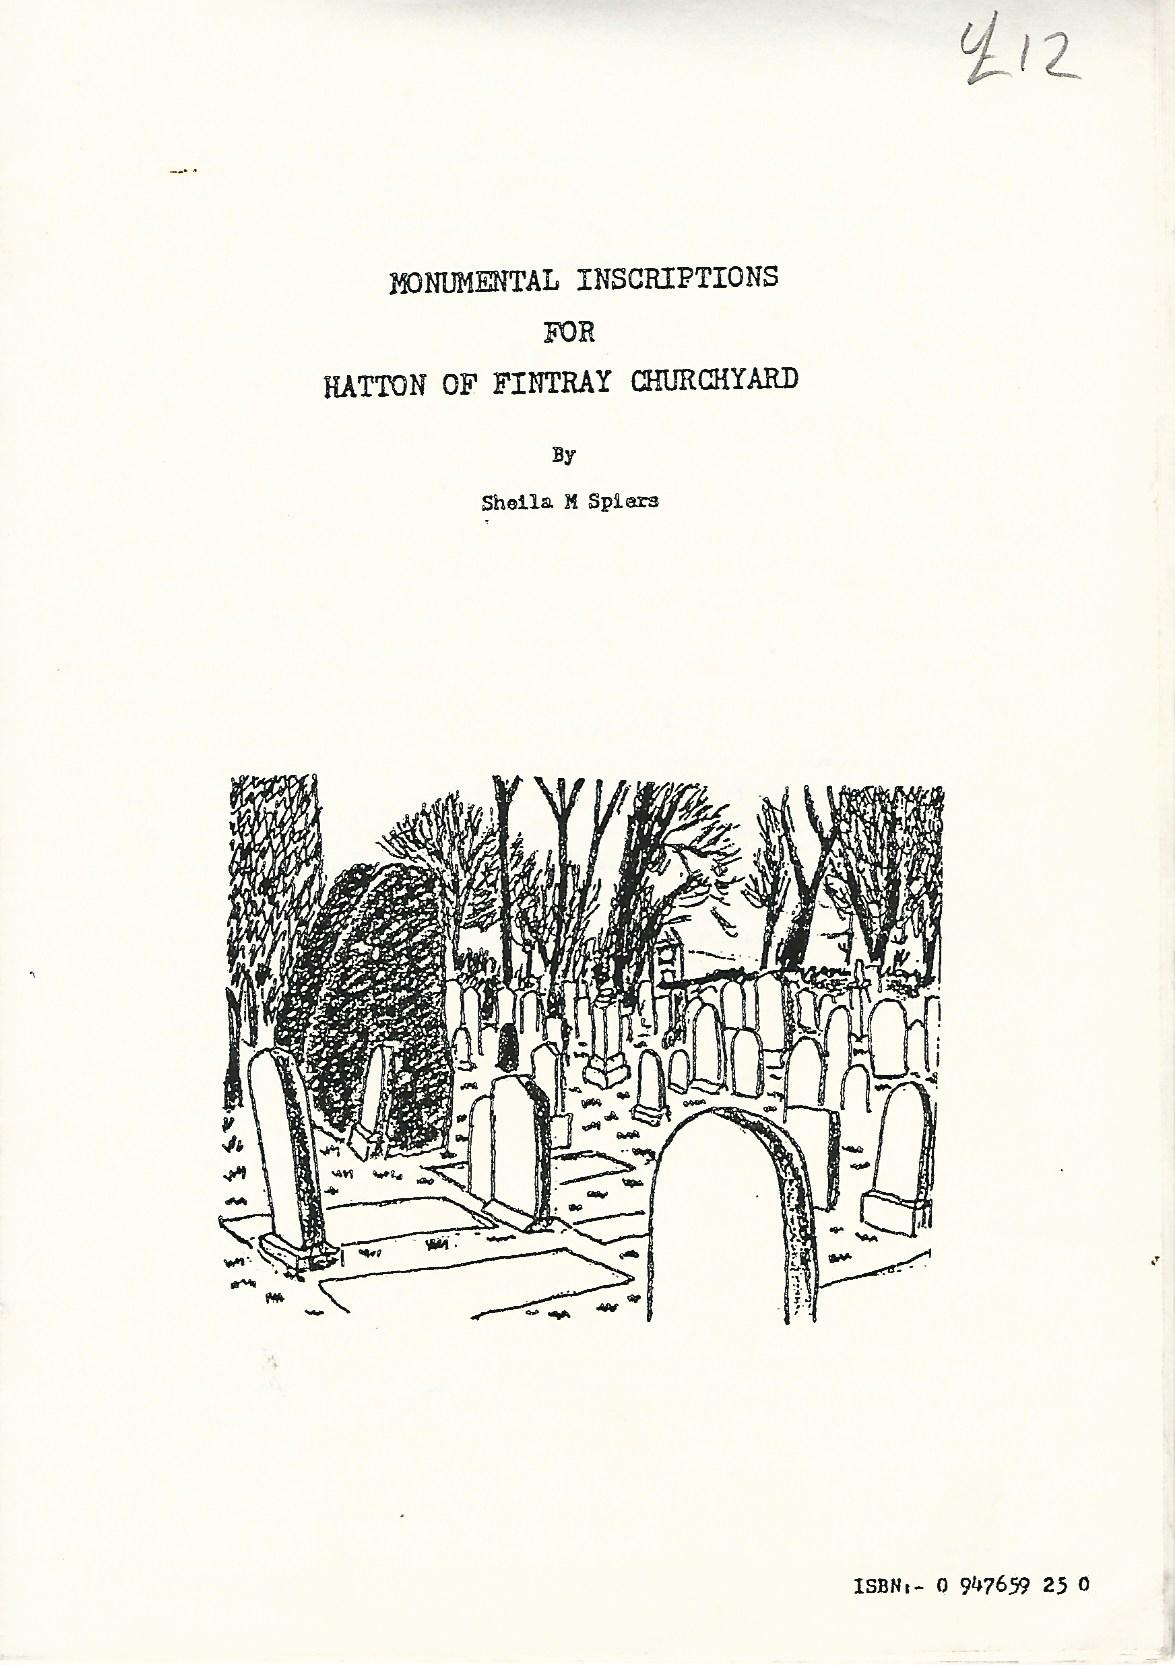 Image for Monumental Inscriptions for Hatton of Fintray Churchyard.